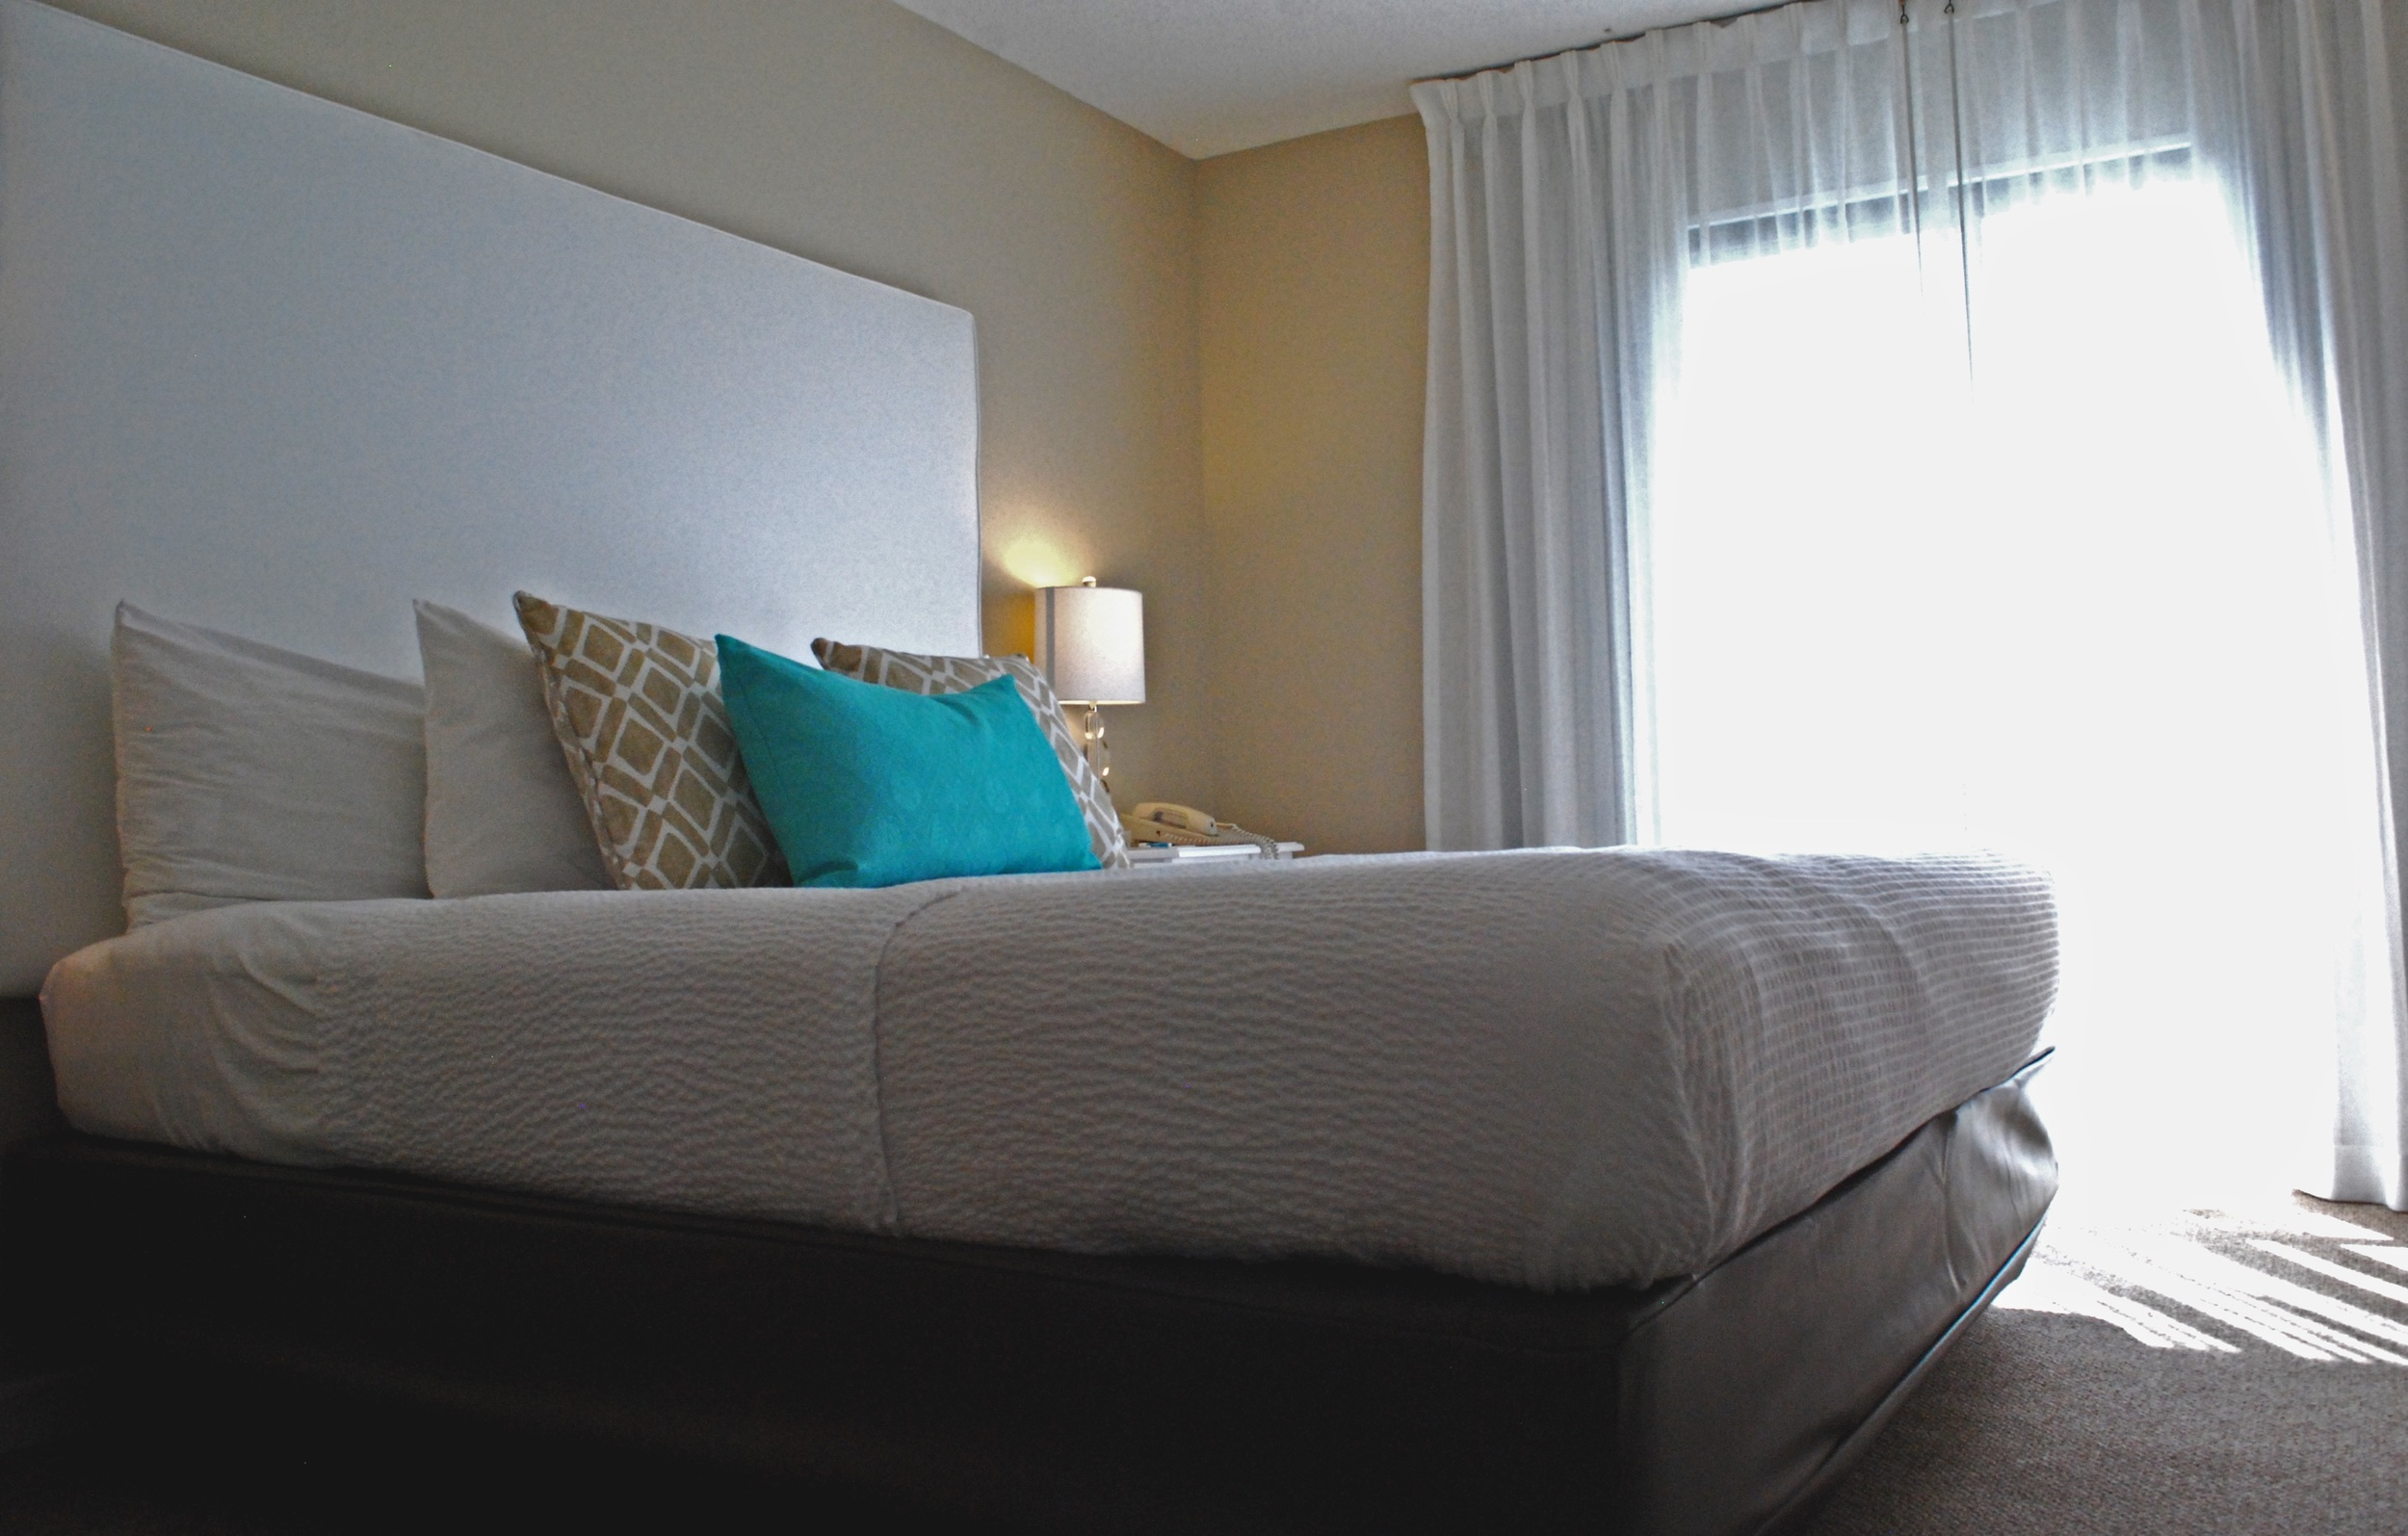 King Suite: One king bed , two televisions, DVD players. sleeper sofa & wet-bar sink area.